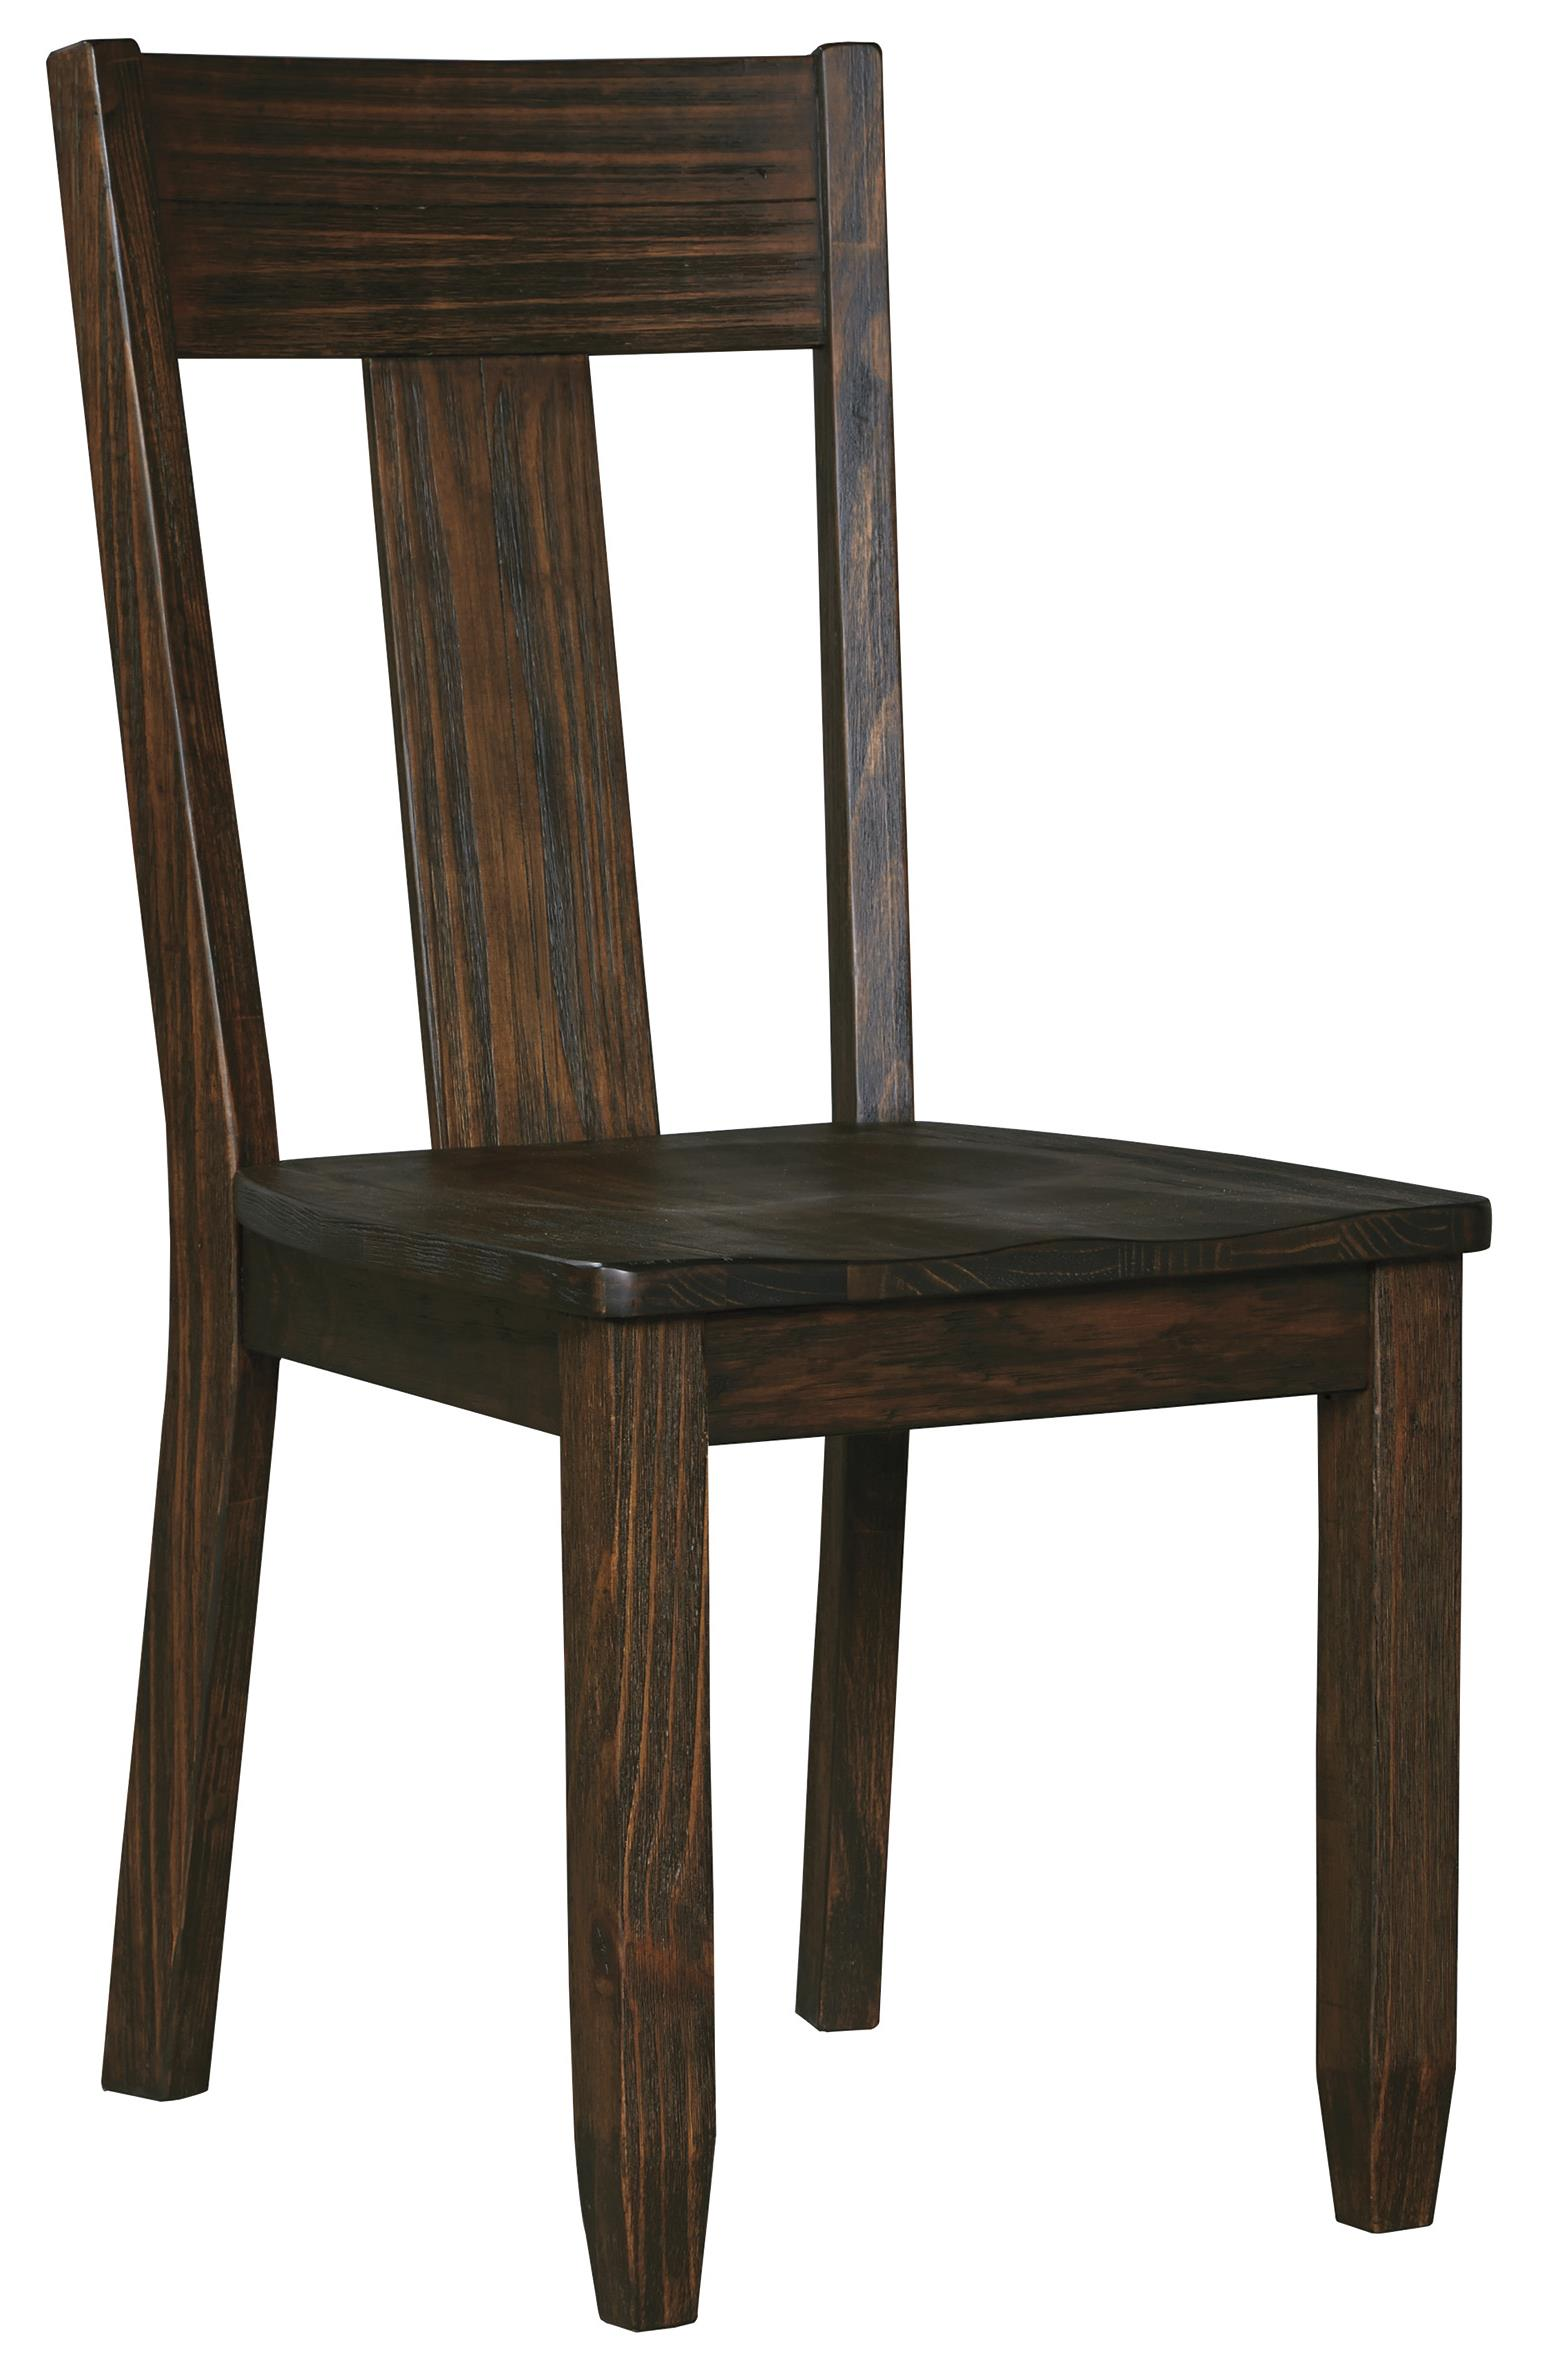 Unfinished Dining Room Chairs Solid Wood Pine Dining Room Side Chair By Signature Design